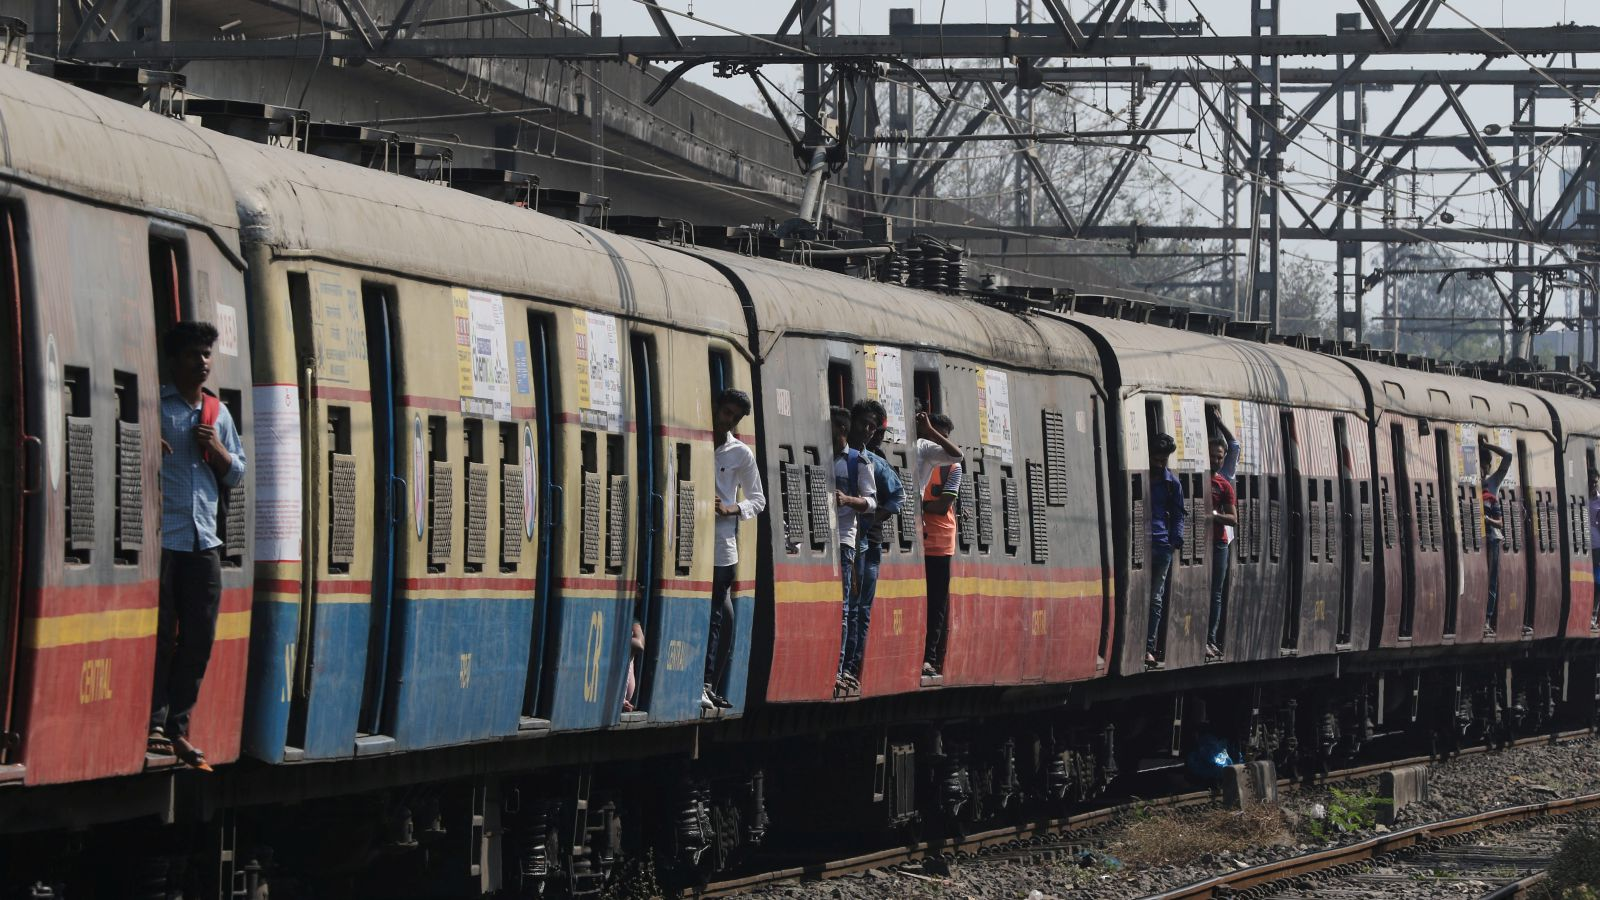 People travel on the foot board of a local train in Mumbai, India, February 1, 2017.